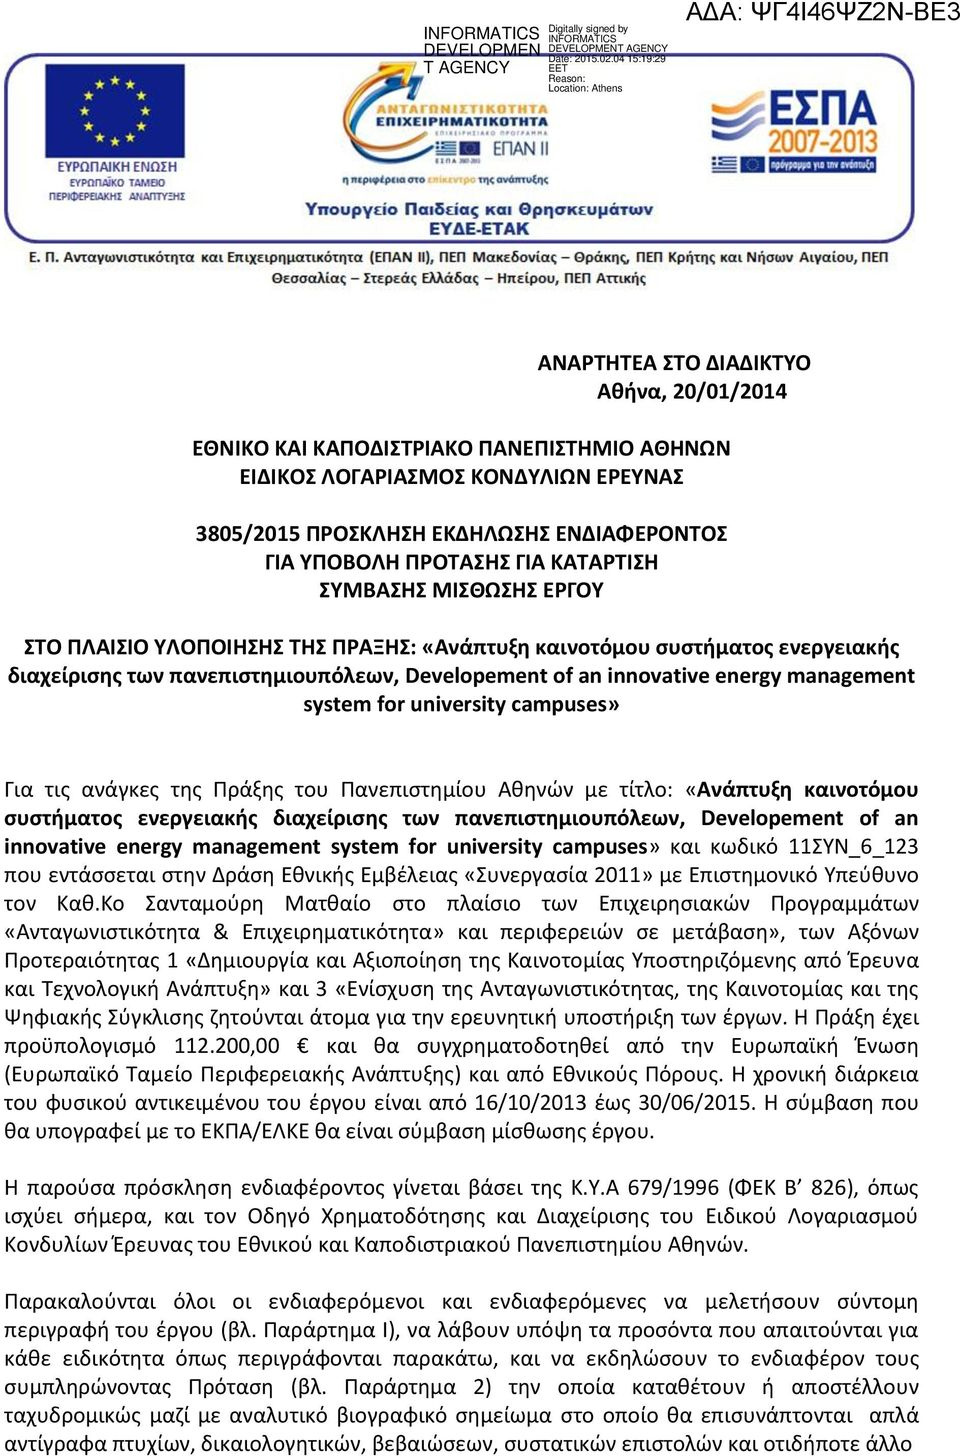 system for university campuses» Για τις ανα γκες της Πρα ξης του Πανεπιστημίου Αθηνών με τίτλο: «Ανάπτυξη καινοτόμου συστήματος ενεργειακής διαχείρισης των πανεπιστημιουπόλεων, Developement of an